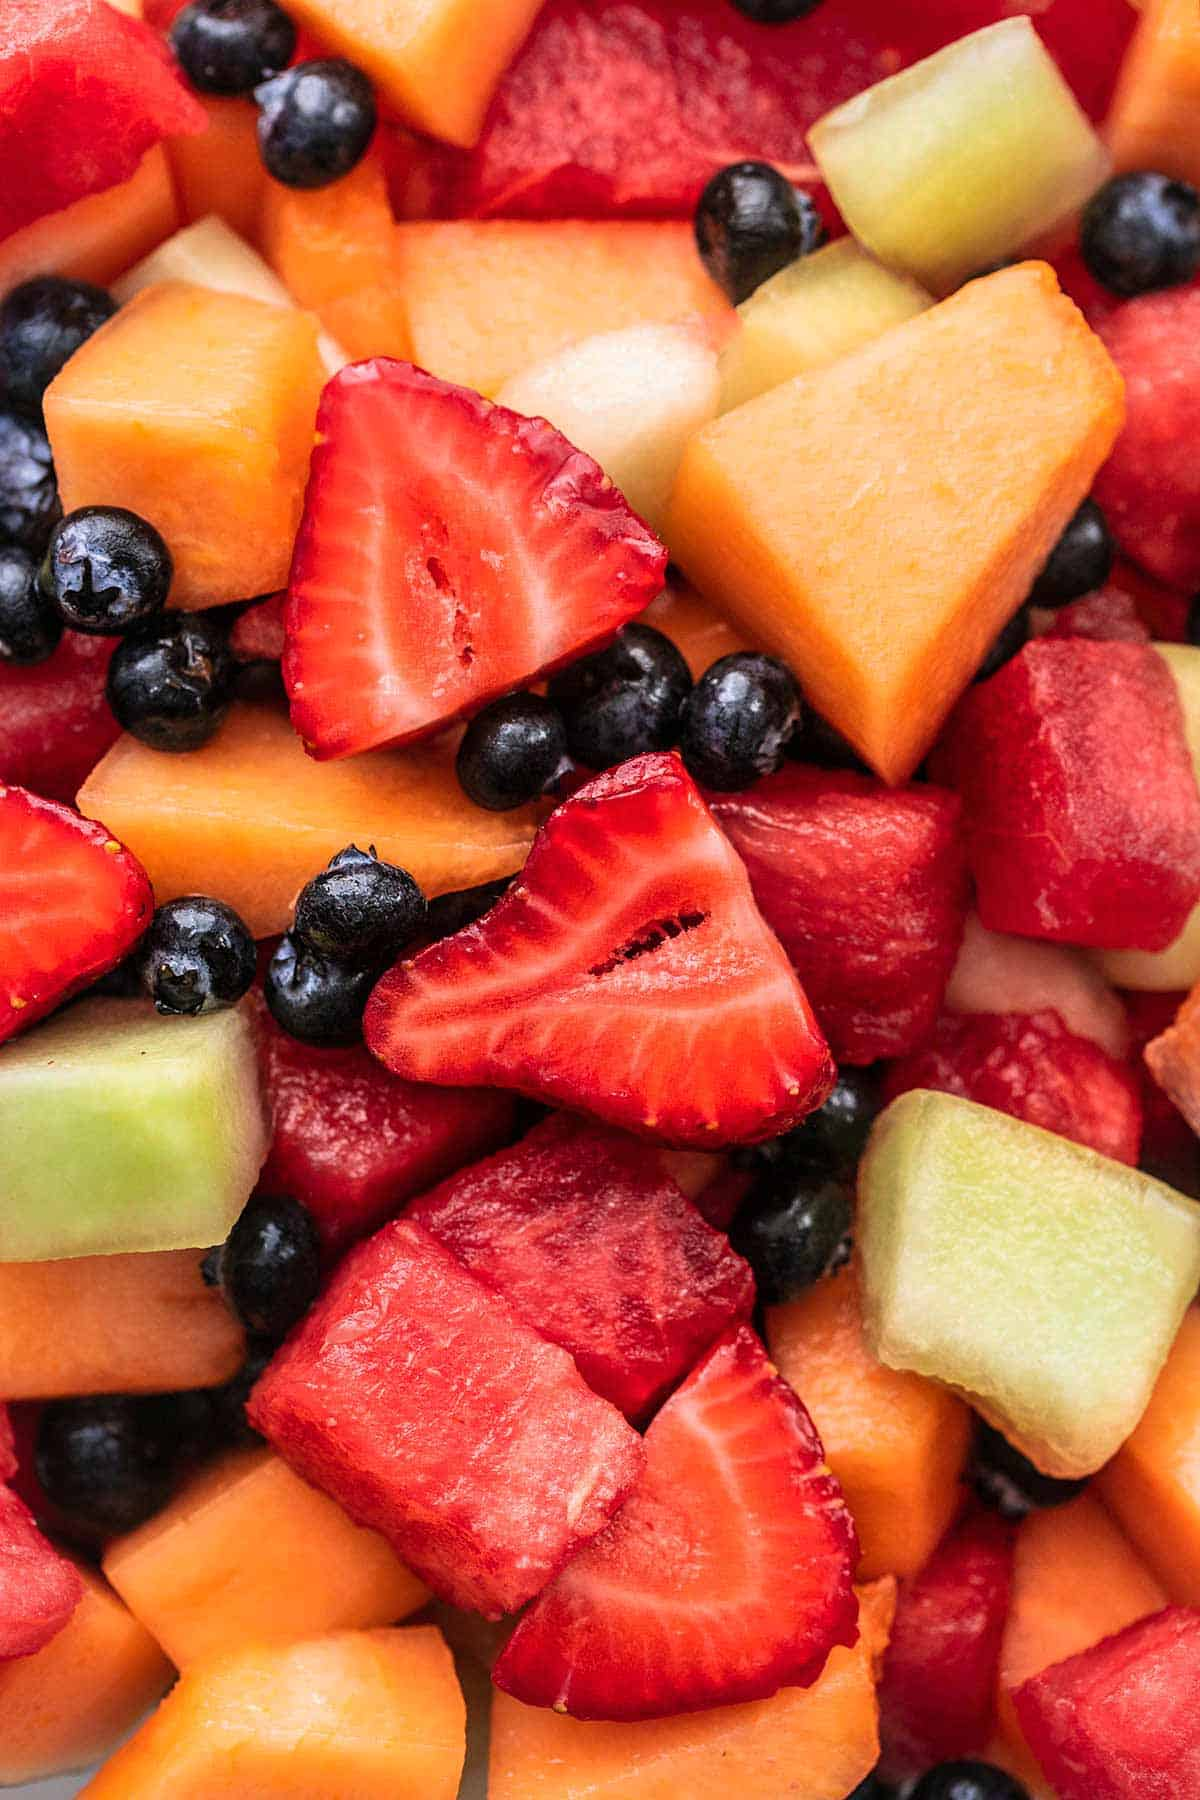 close up view of fruit salad with berries and melon chunks